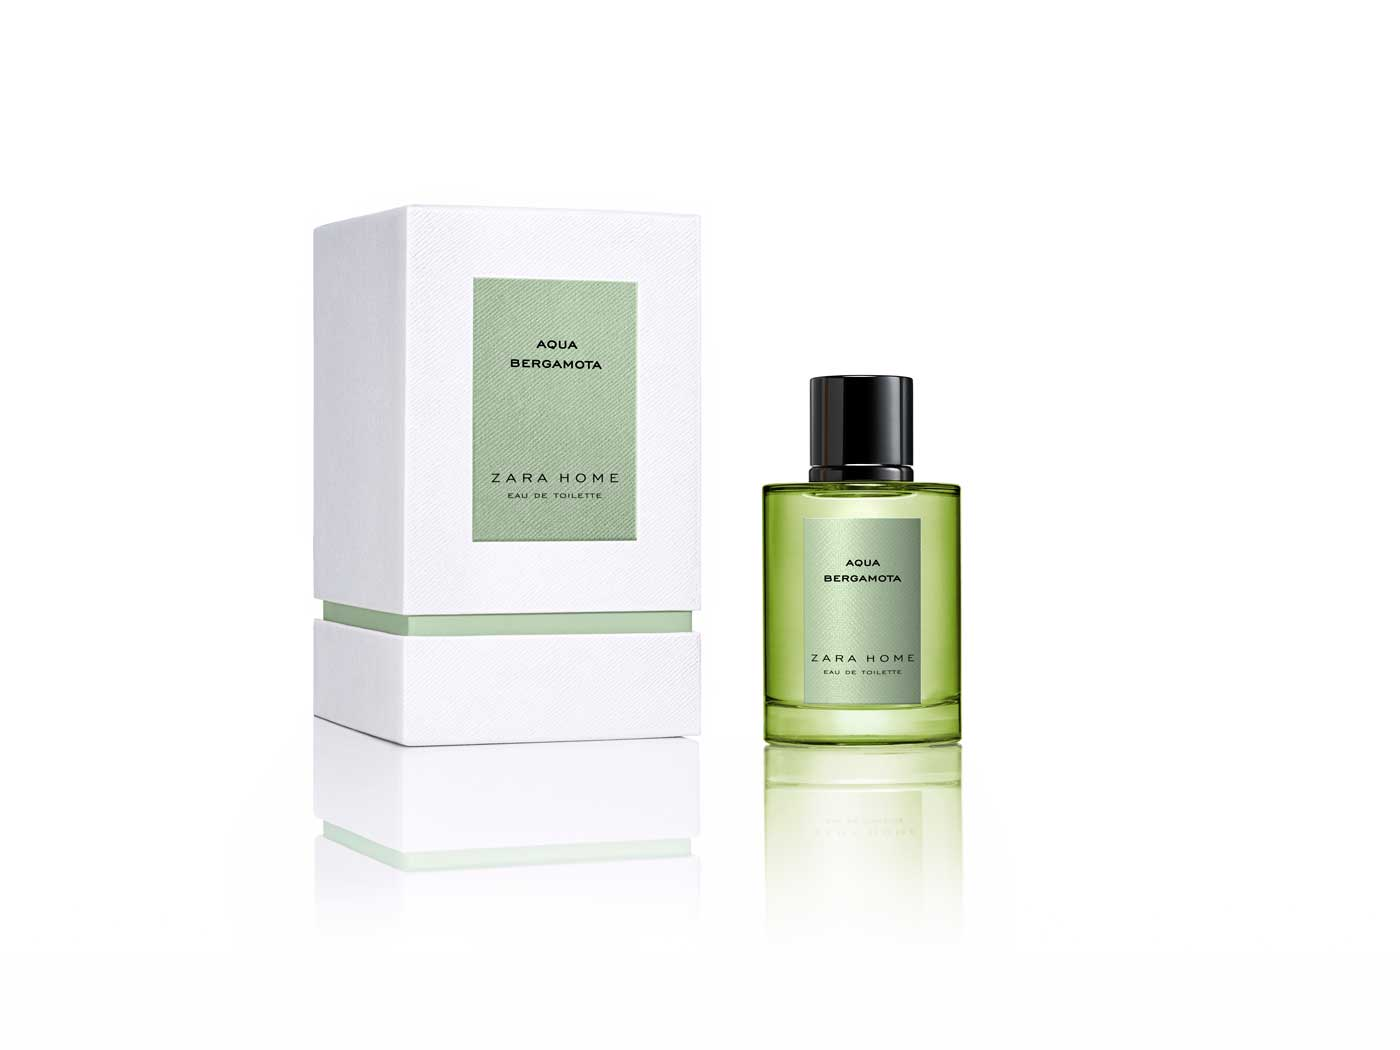 Perfume Et HomeIdées Zara By The Collection DécoMeubles oexrQCdBW